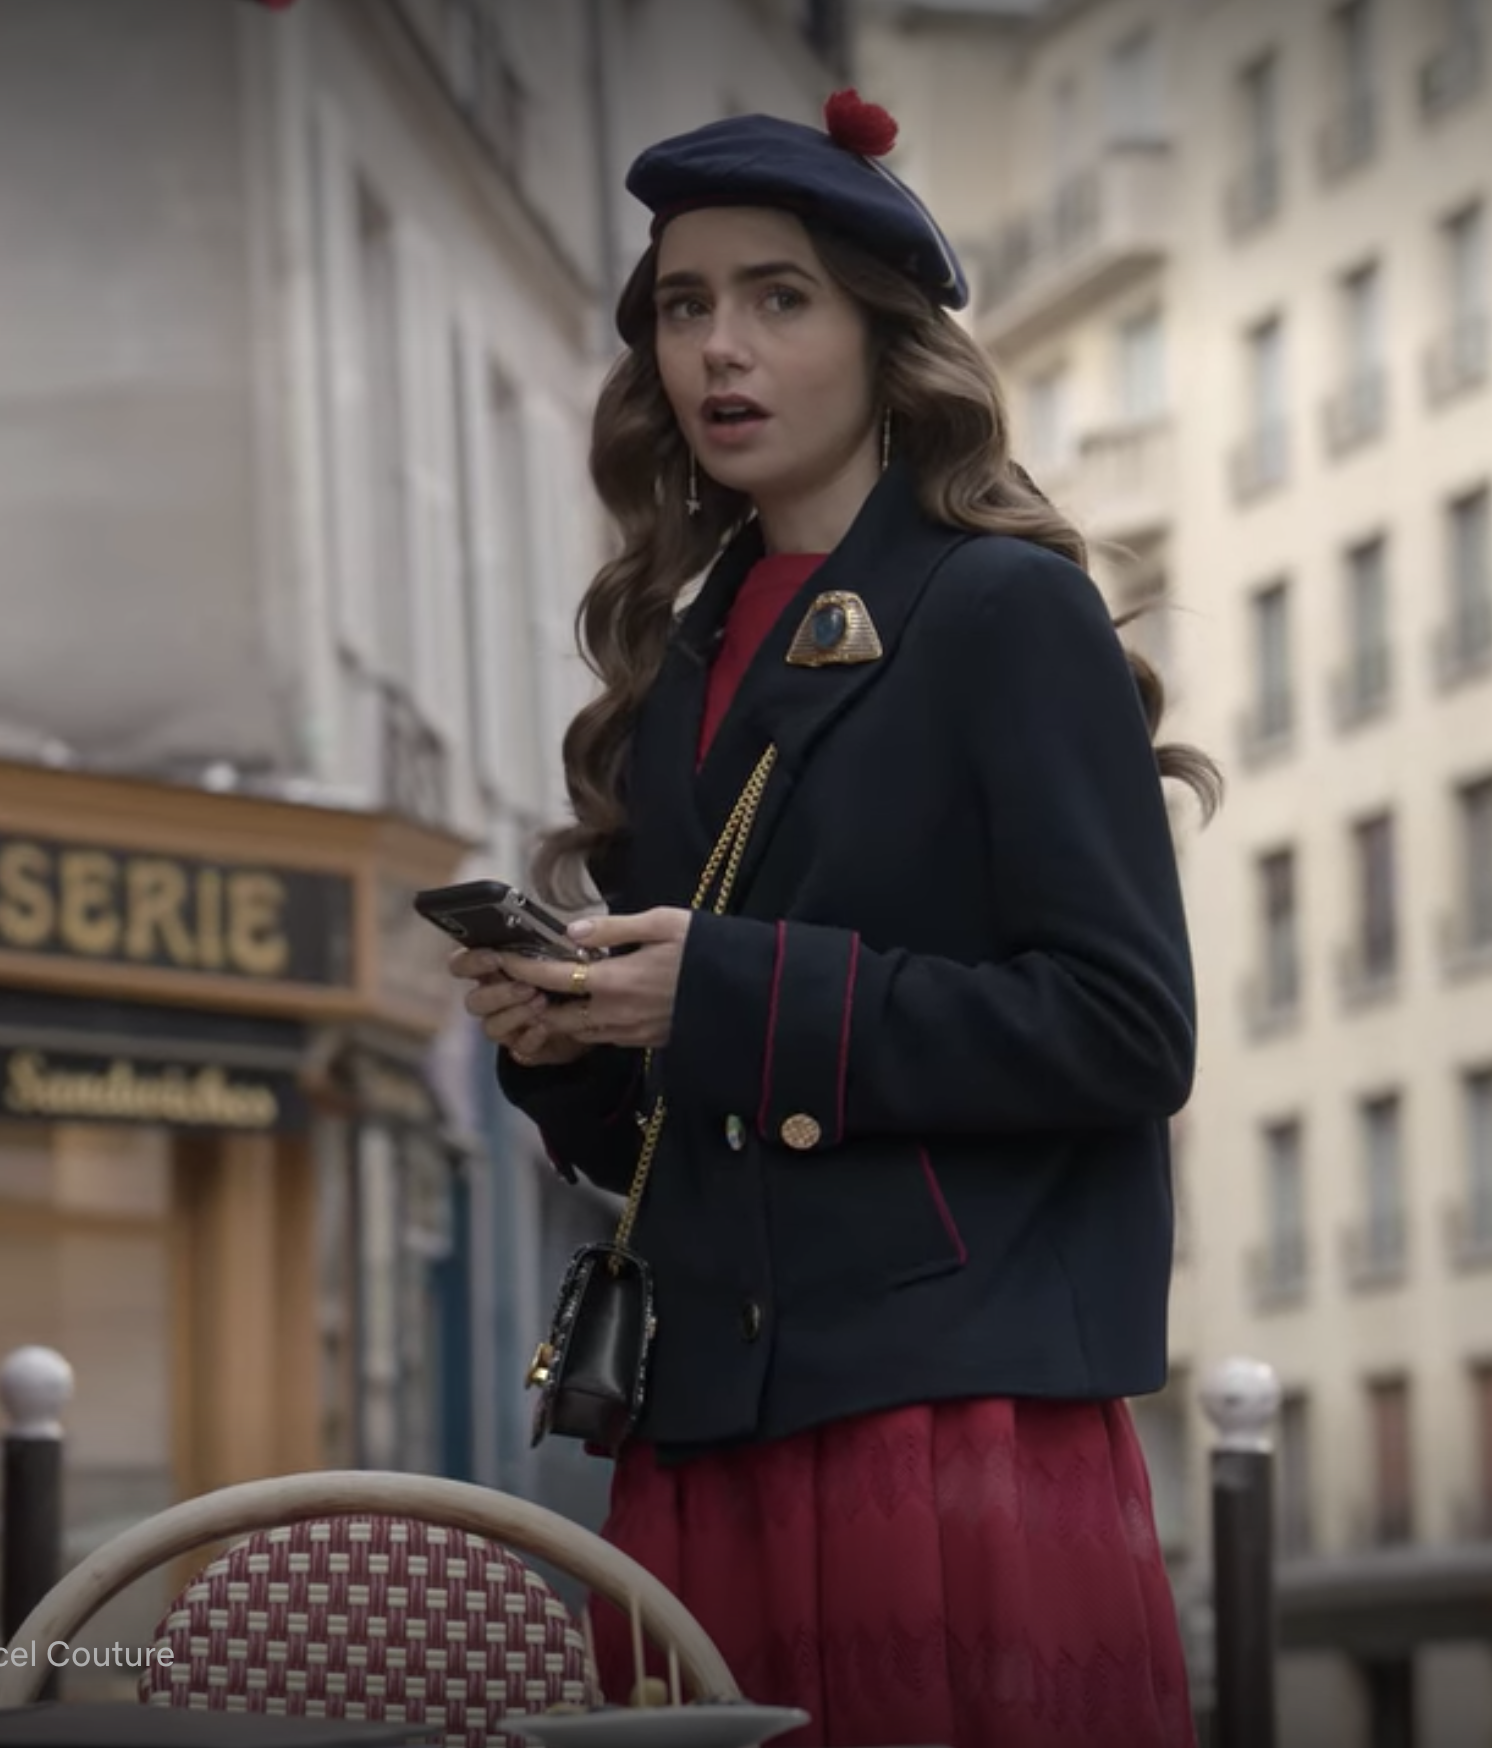 Emily looks up from her phone, shook, wearing a red high necked dress, navy blazer with an oversized brooch on the lapel, and a navy beret with a red poof on the top